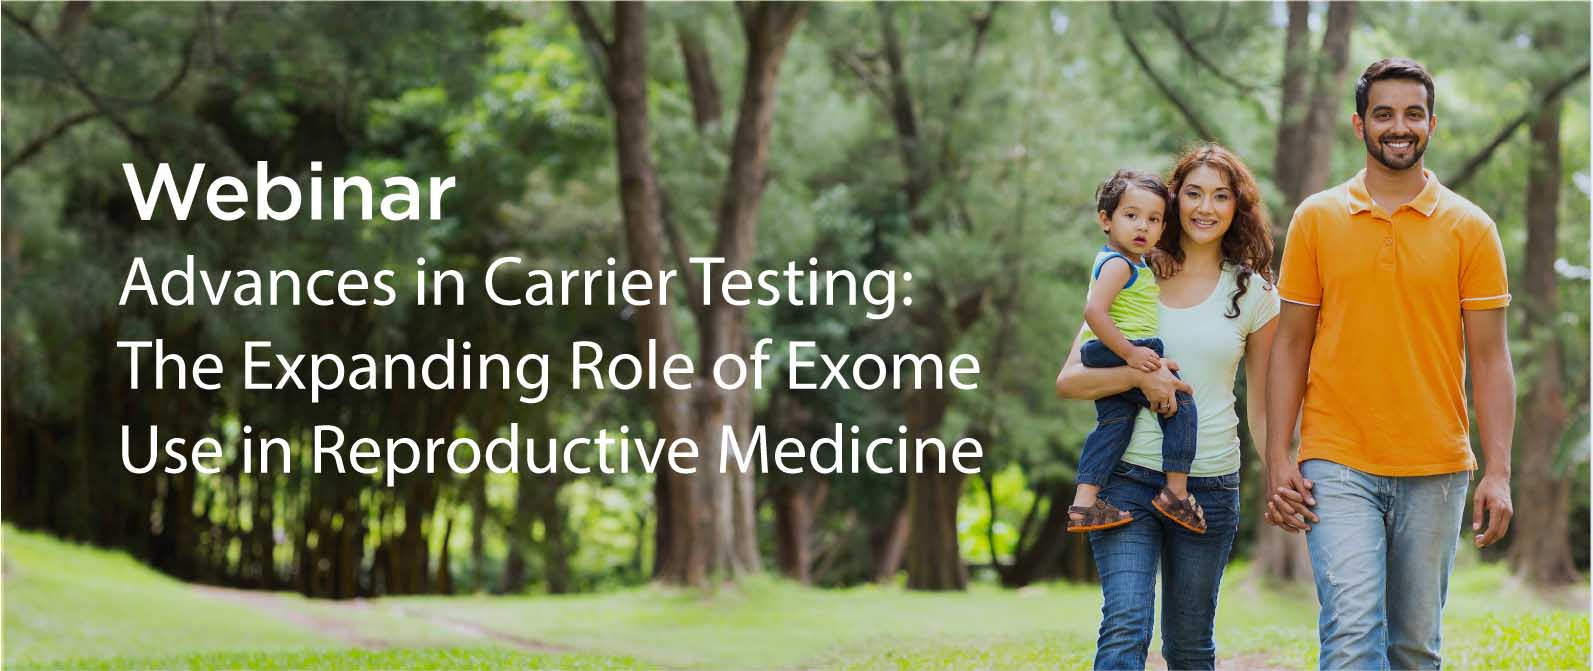 Webinar: Exome Use In Carrier Testing